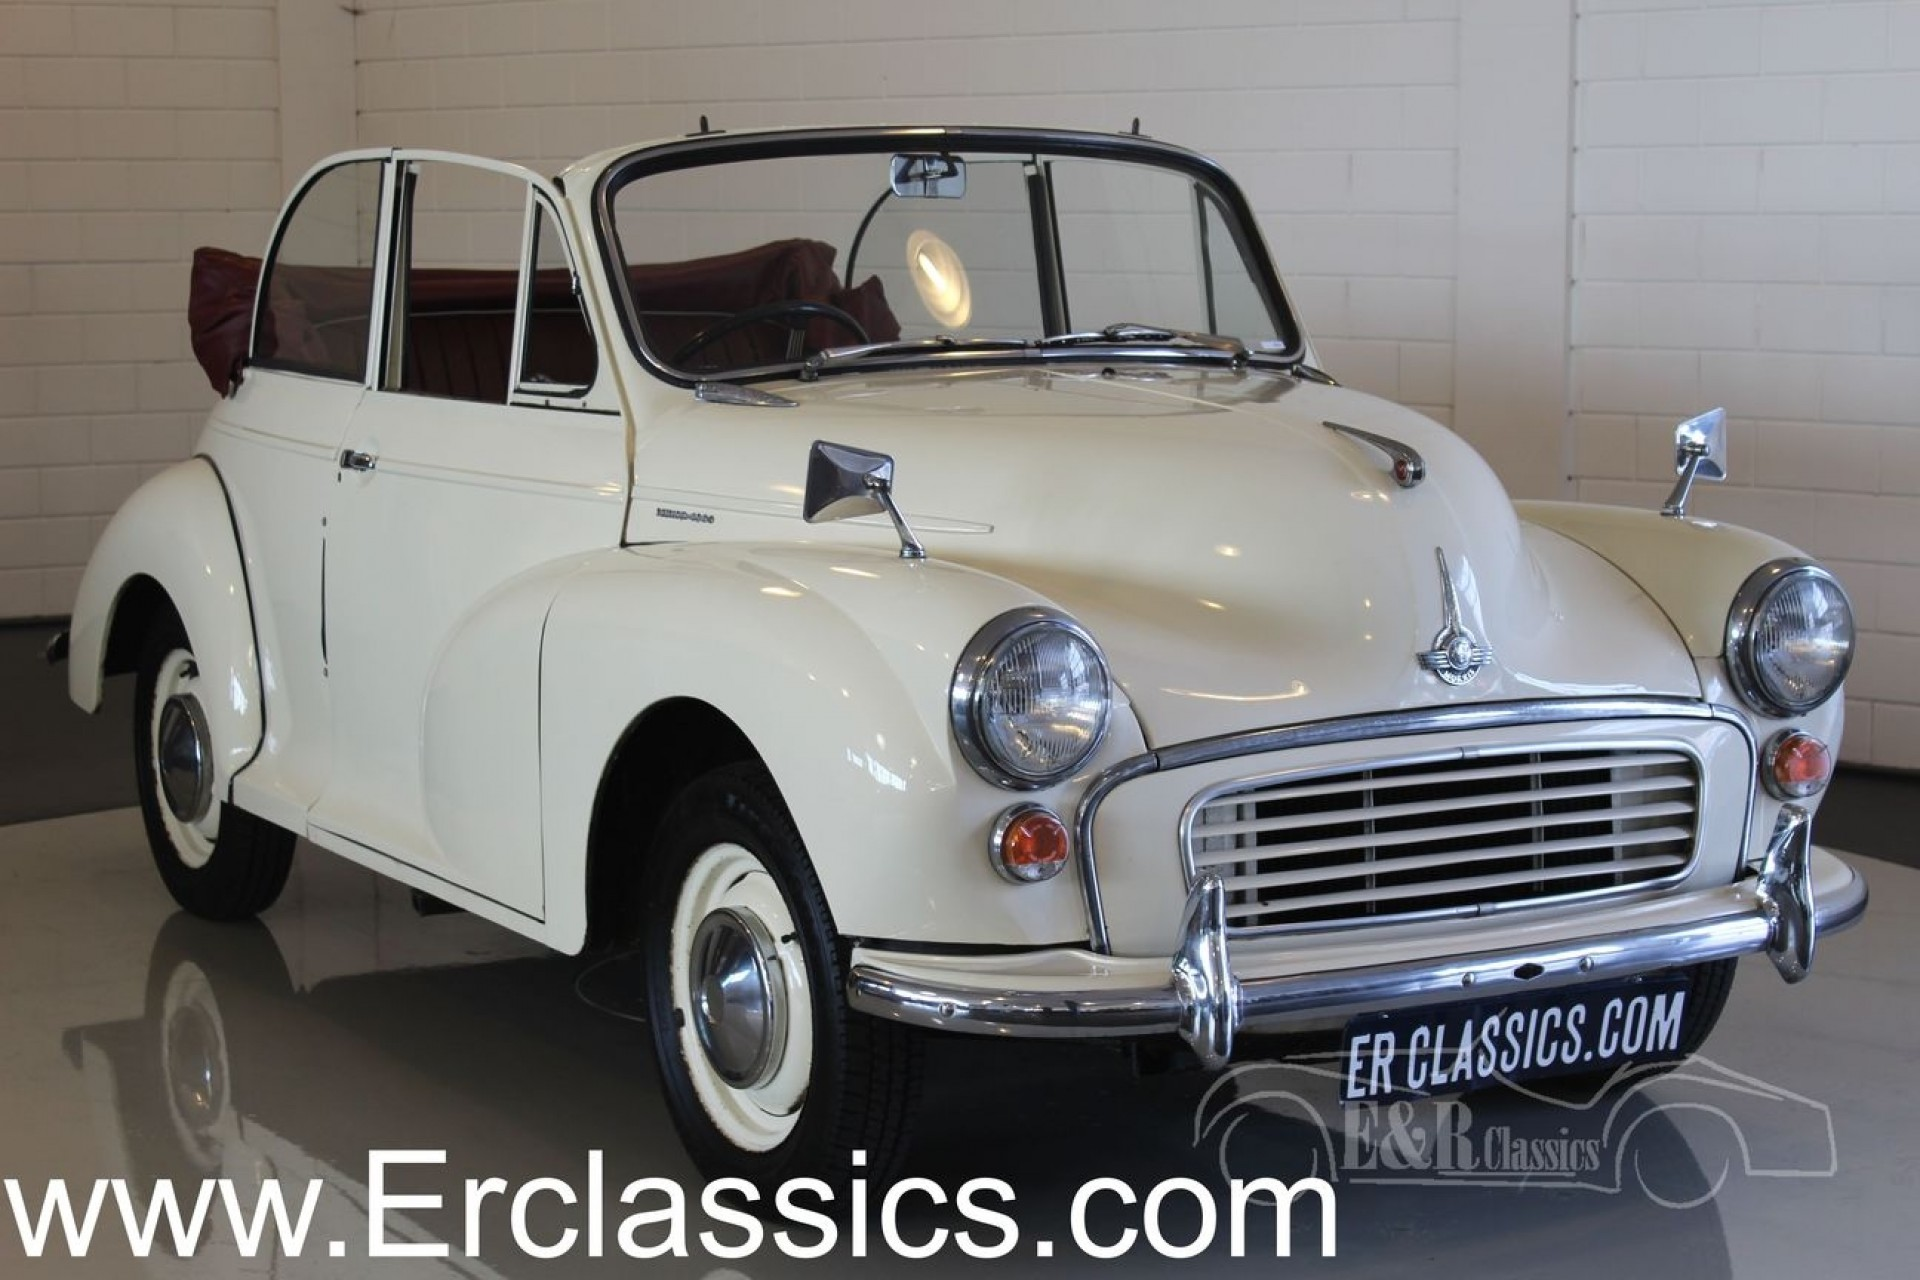 Classic cars for sale | Autoclassics.com